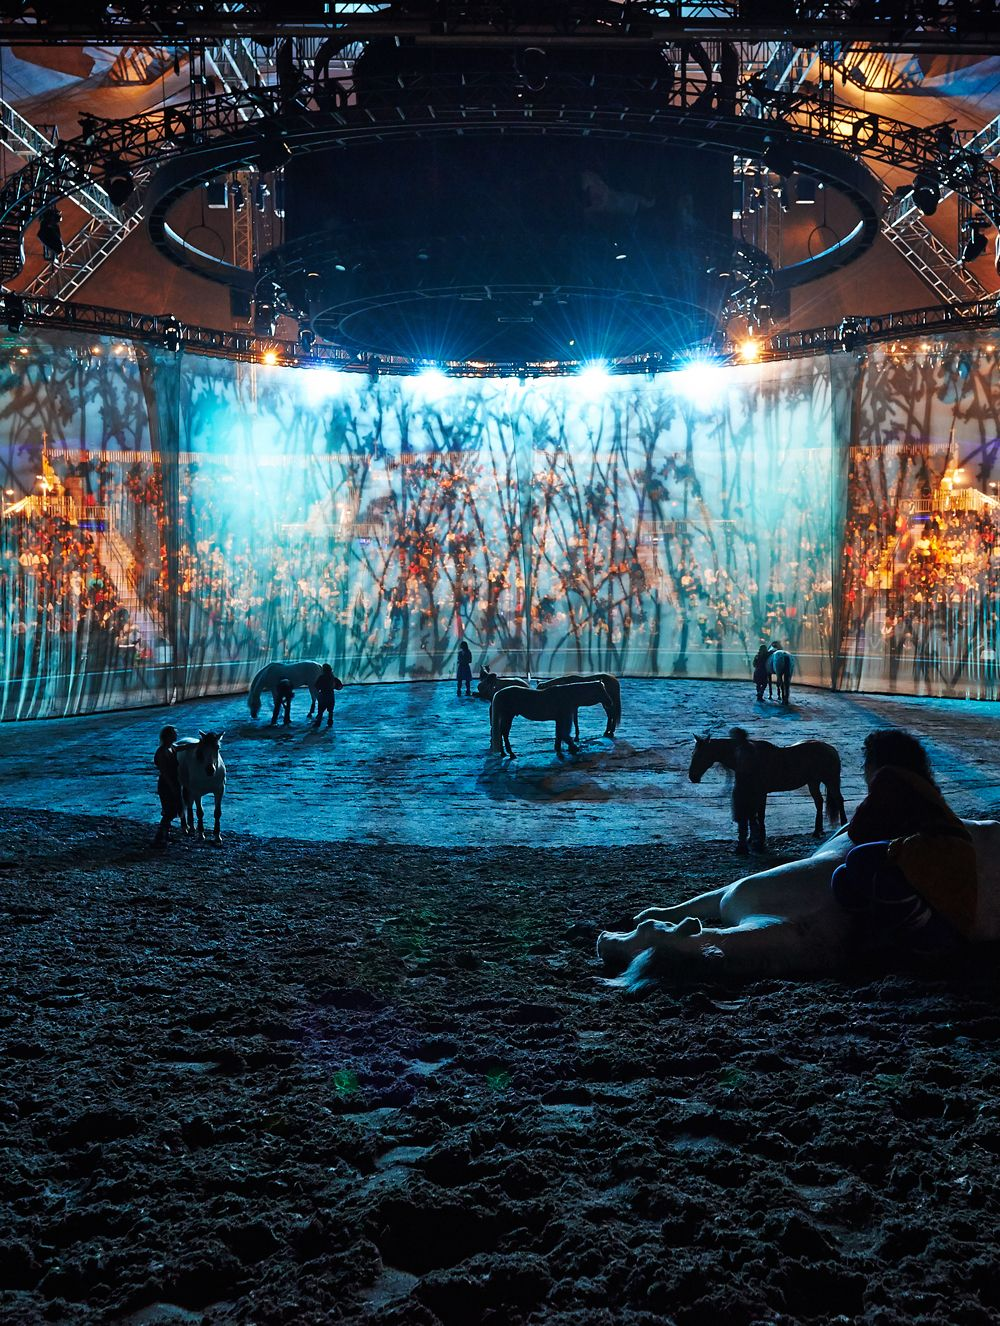 2 DAYS until Cavalia's Odysseo premiere in #Winnipeg!  The #WhiteBigTop has been raised, the stage has been set, the stars of the show – our musicians, our 45 artists and our 65 horses – are waiting for you.  Don't miss tomorrow's online event! Although we're not revealing the surprise just yet, be sure to download the Periscope mobile app for iOS & Android before 1:00PM CDT tomorrow and follow Cavalia on the app.